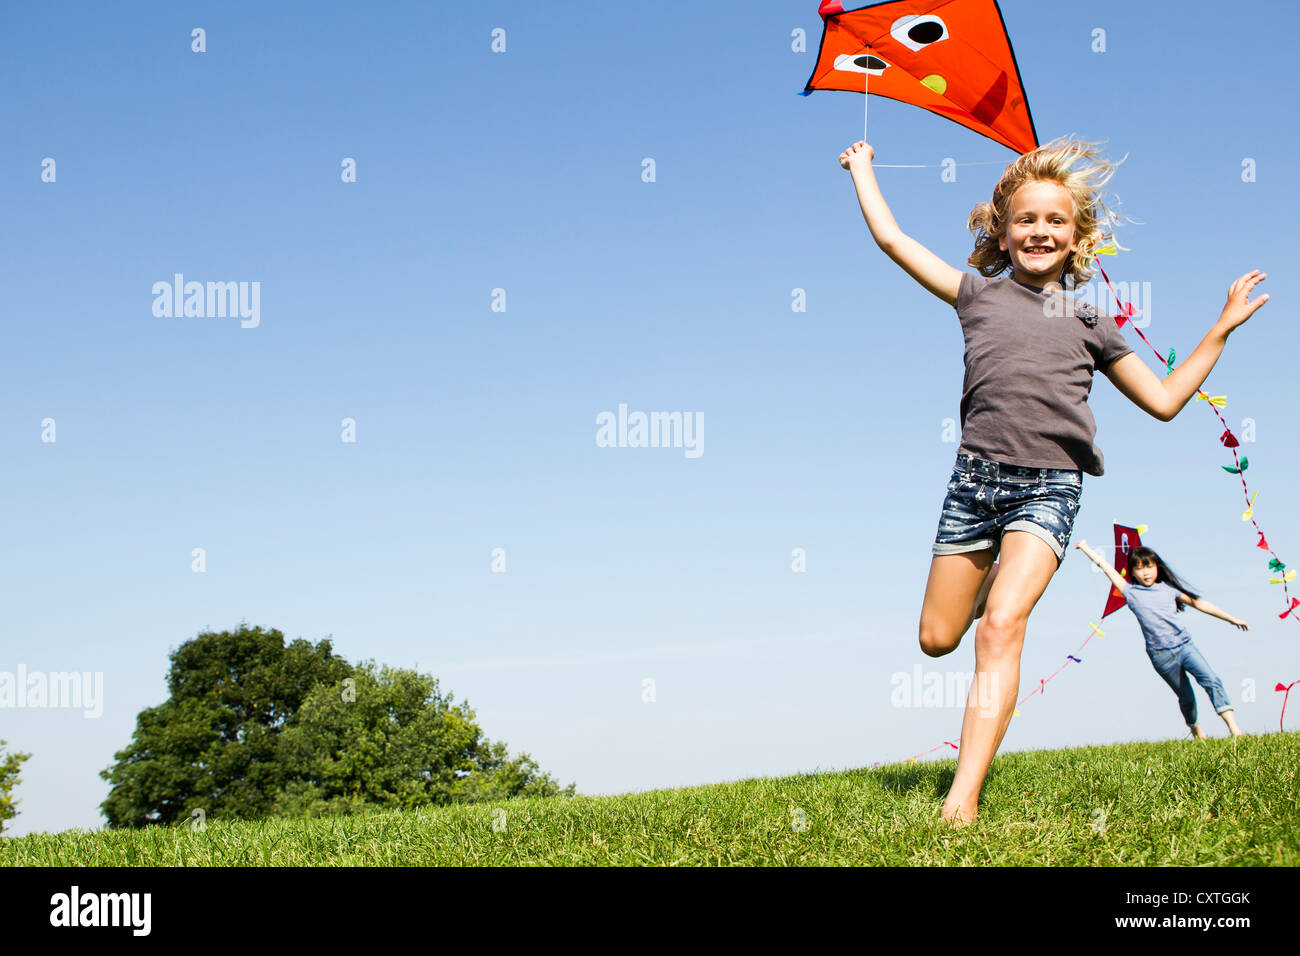 Girls playing with kites outdoors - Stock Image